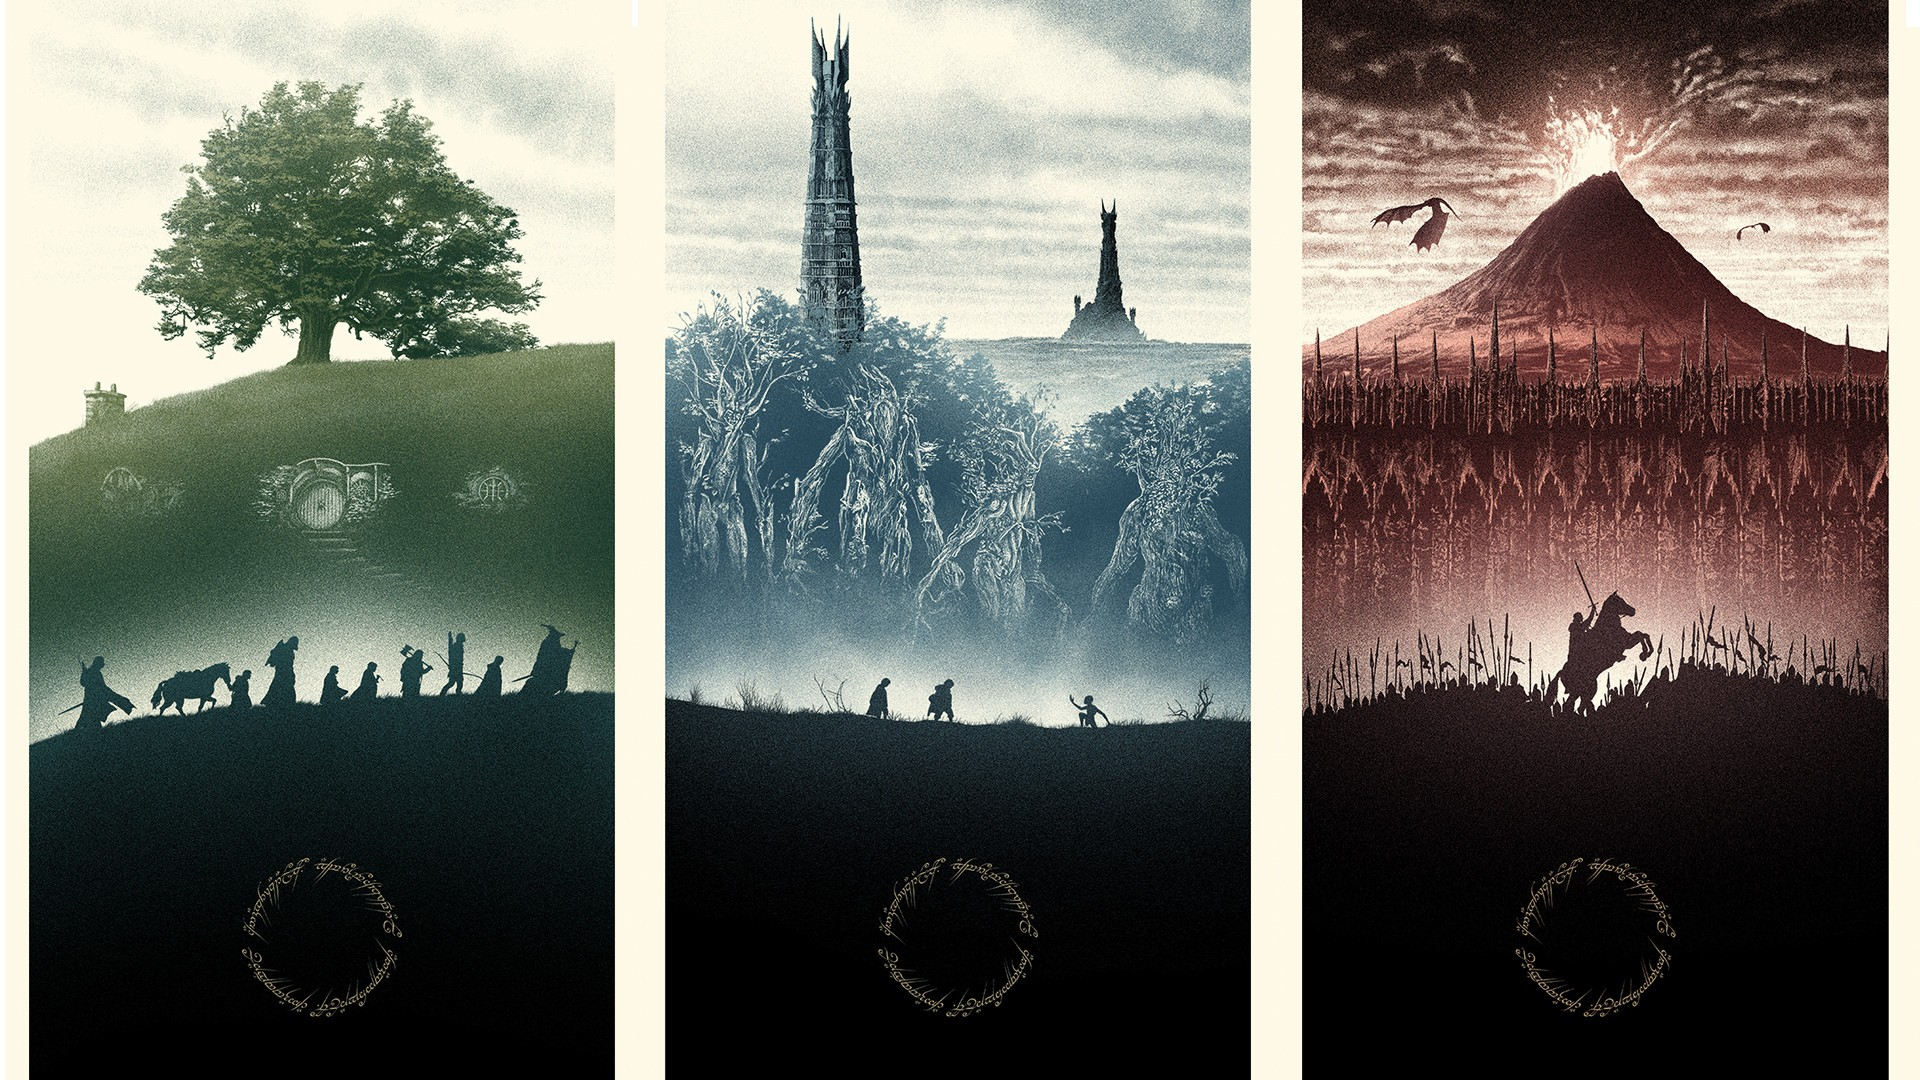 Lord Of The Rings Wallpaper Download Free Wallpapers For